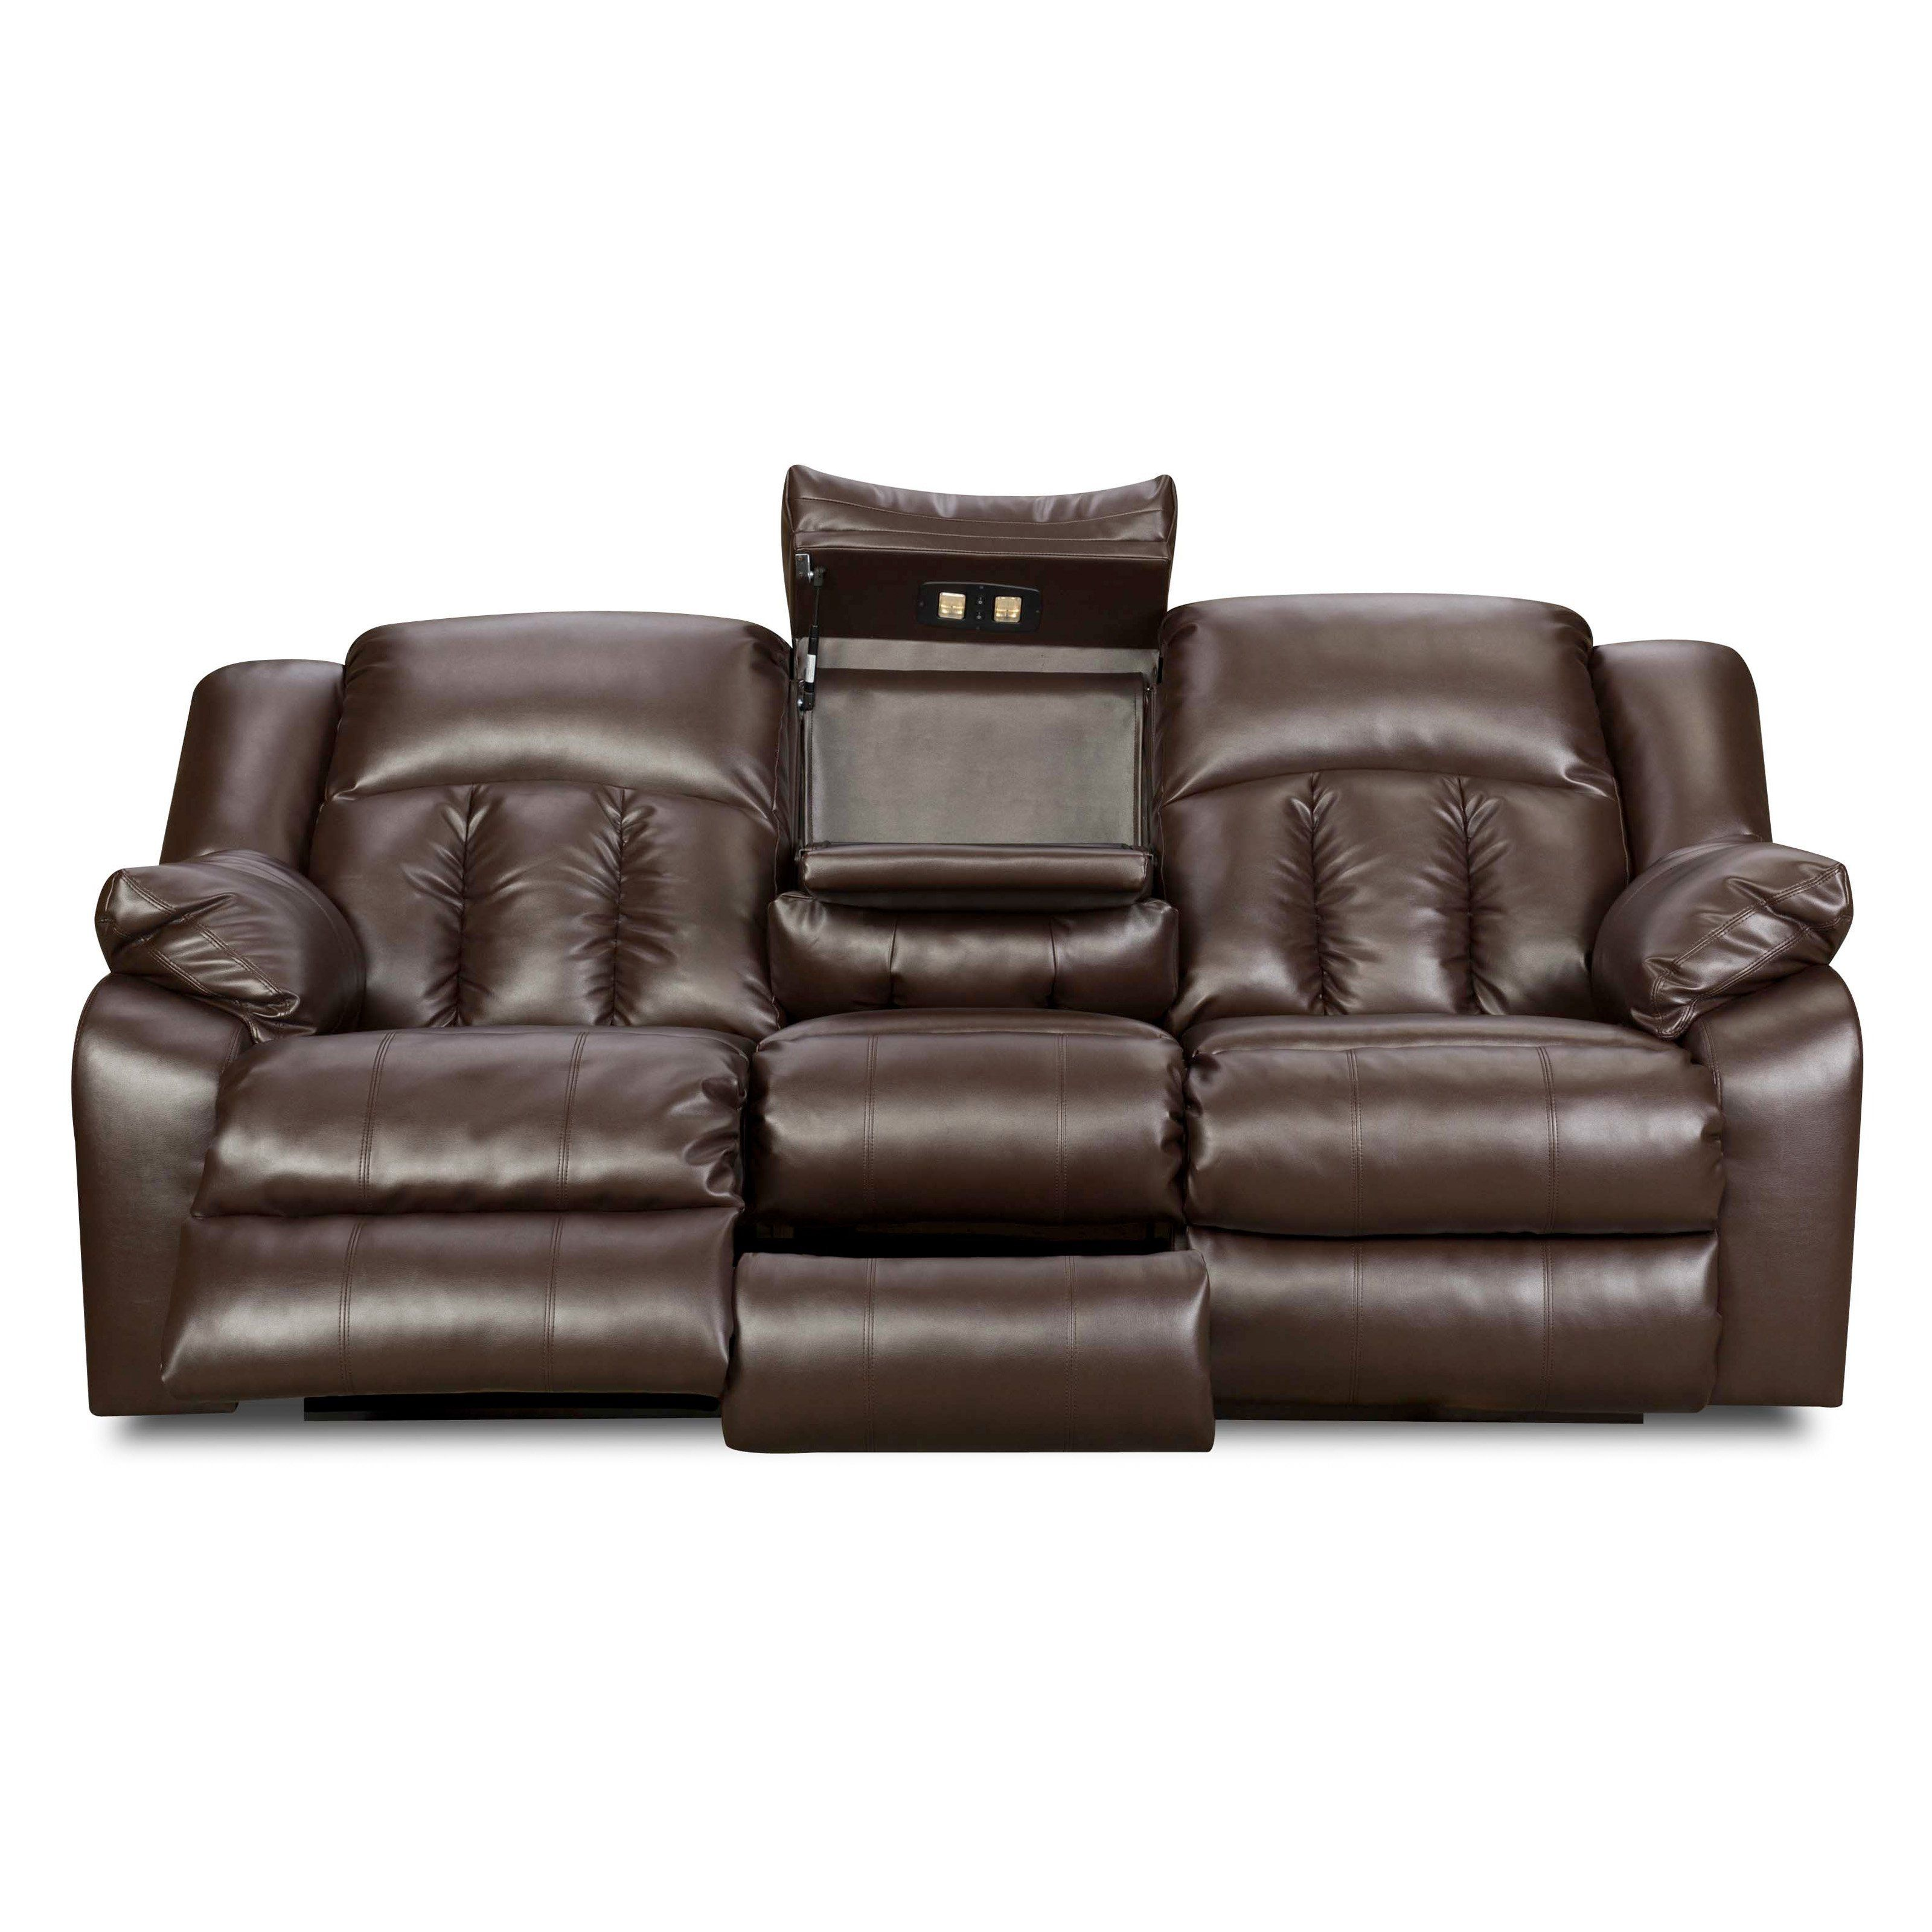 Simmons Upholstery Sebring Bonded Leather Double Motion Sofa 50325 68 Coffeebean